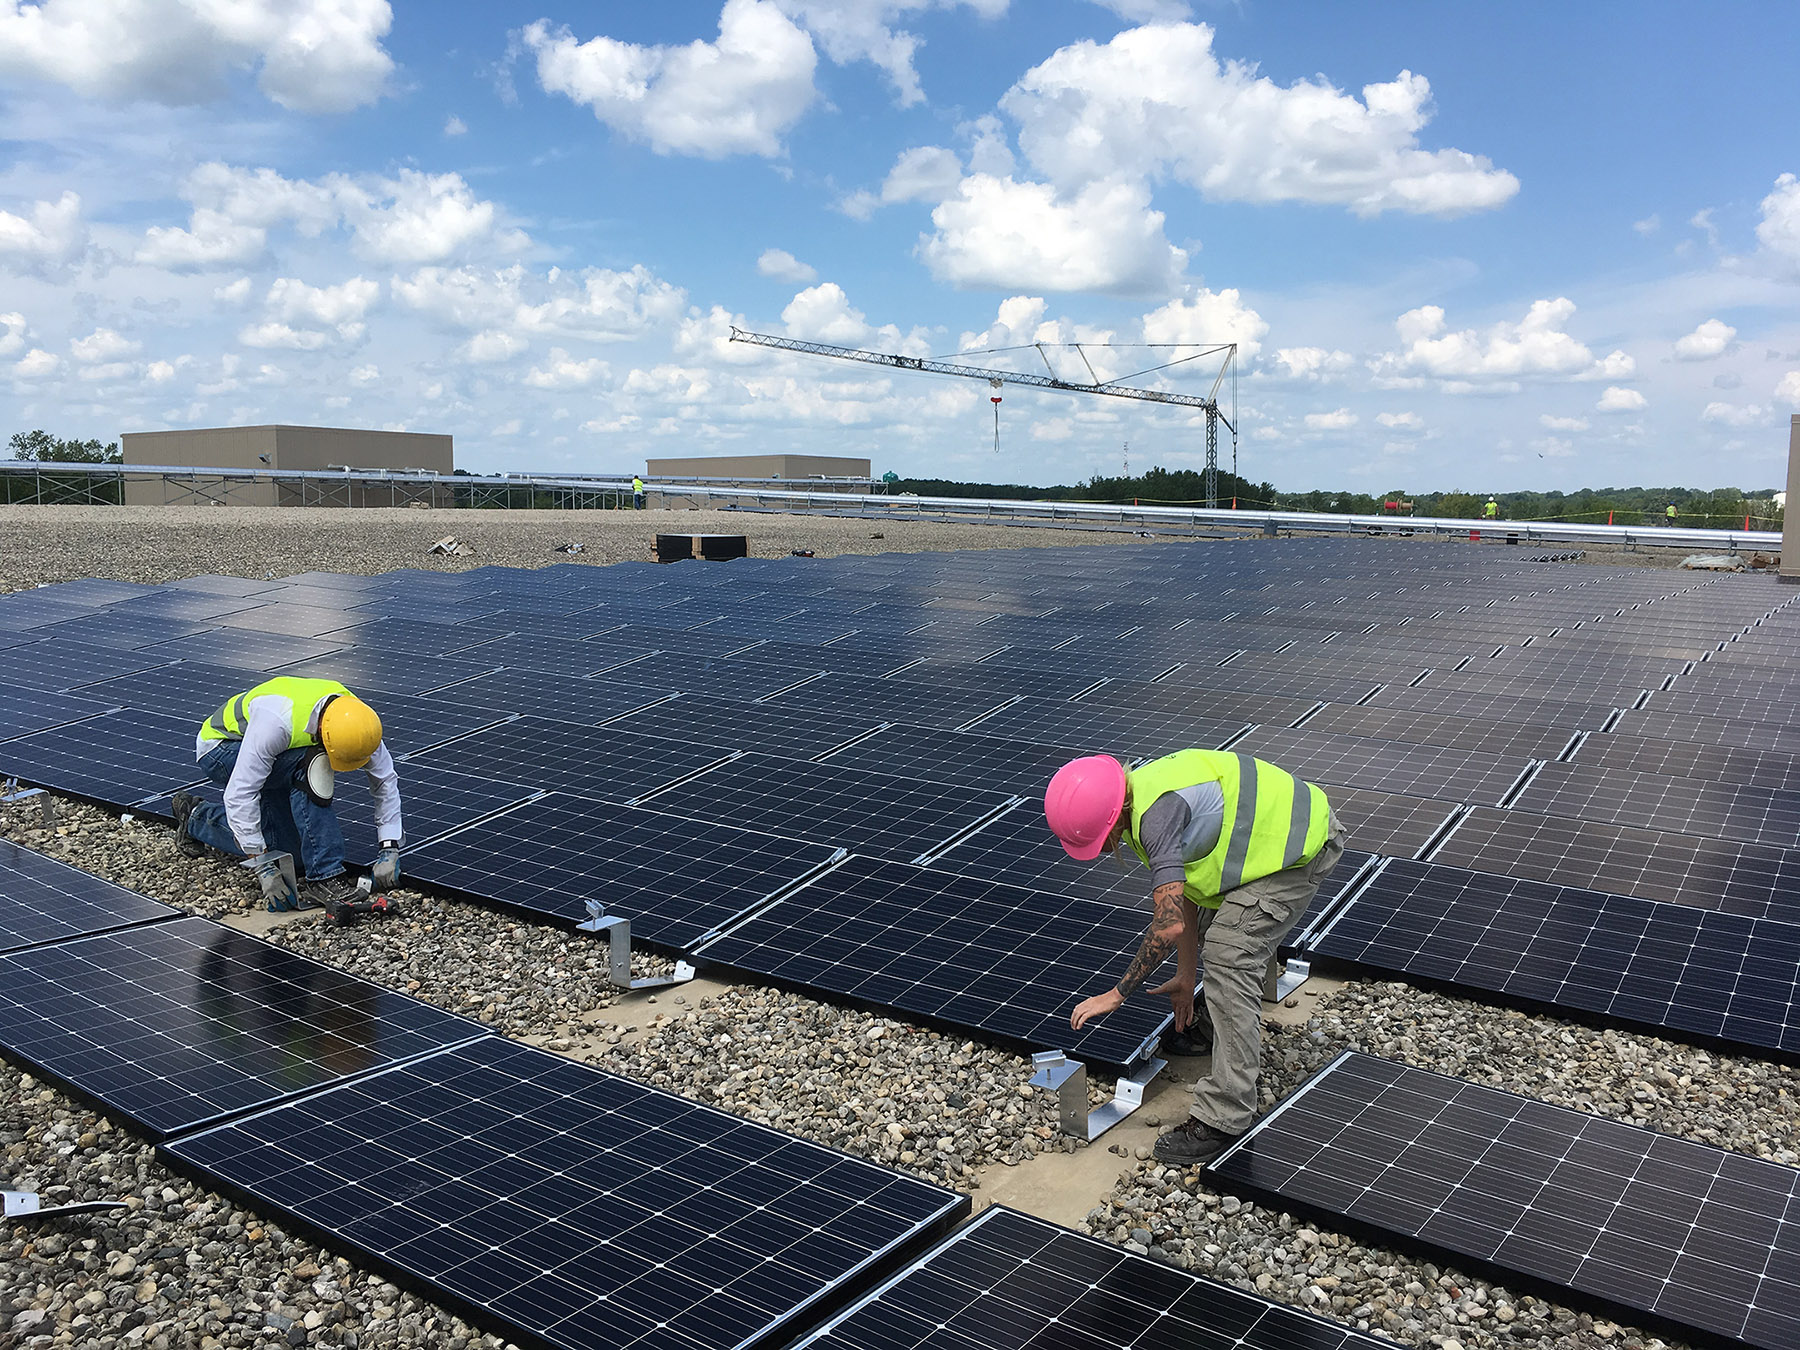 2 workers installing SunPeak solar panels on a roof